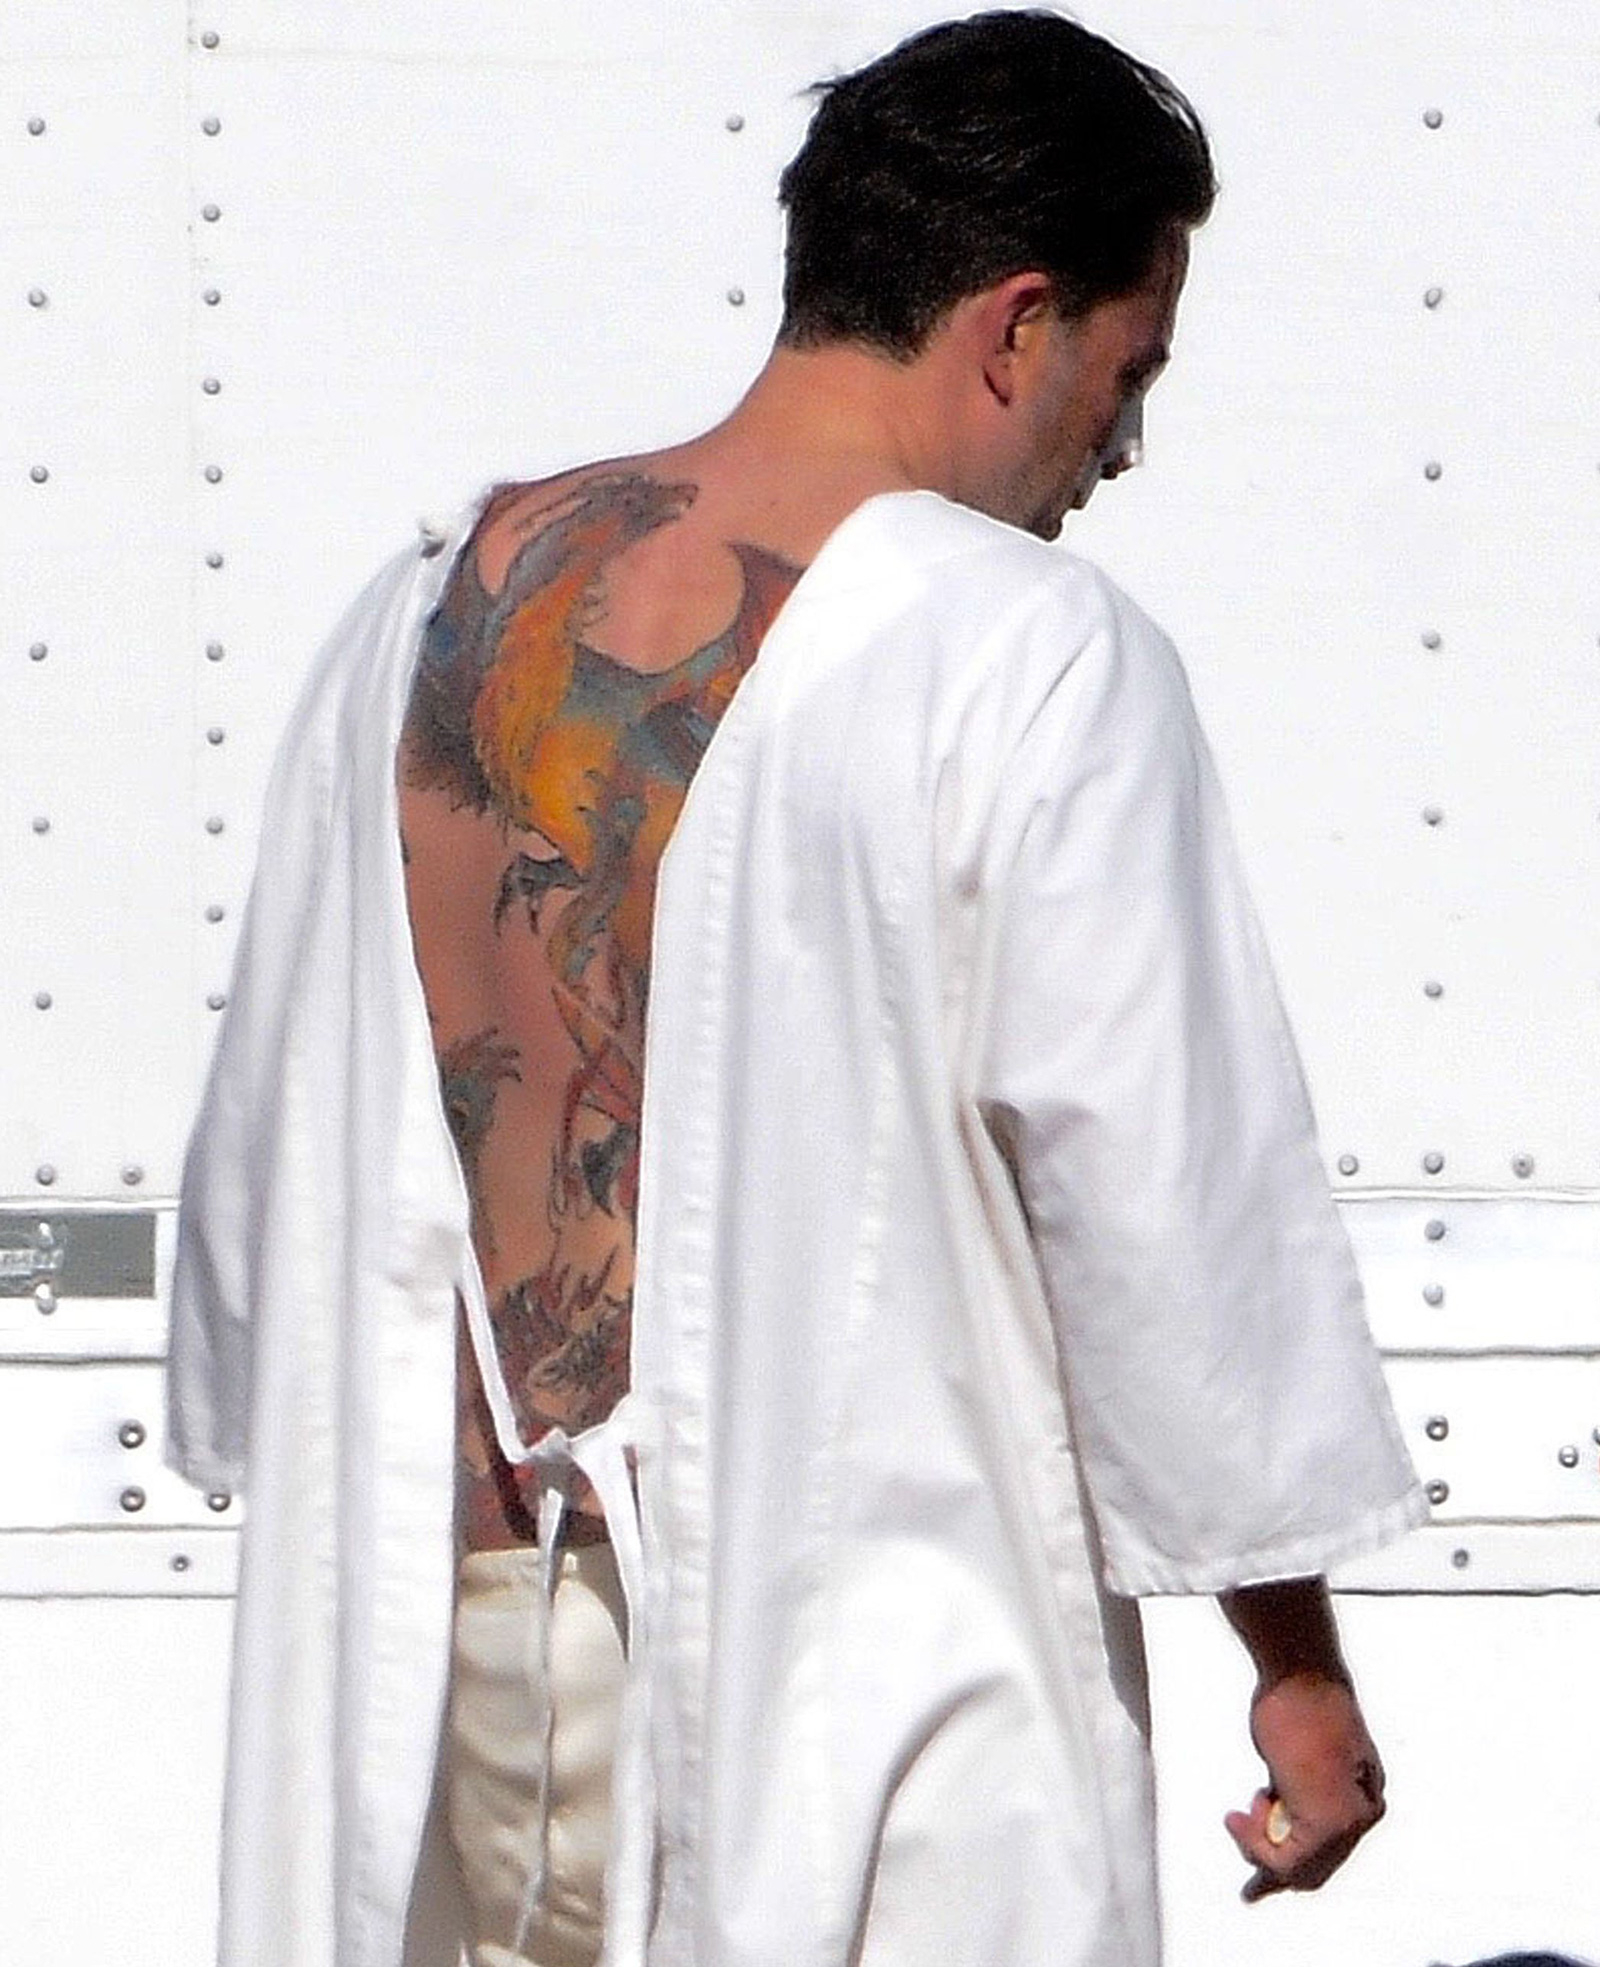 Ben Affleck back tattoo